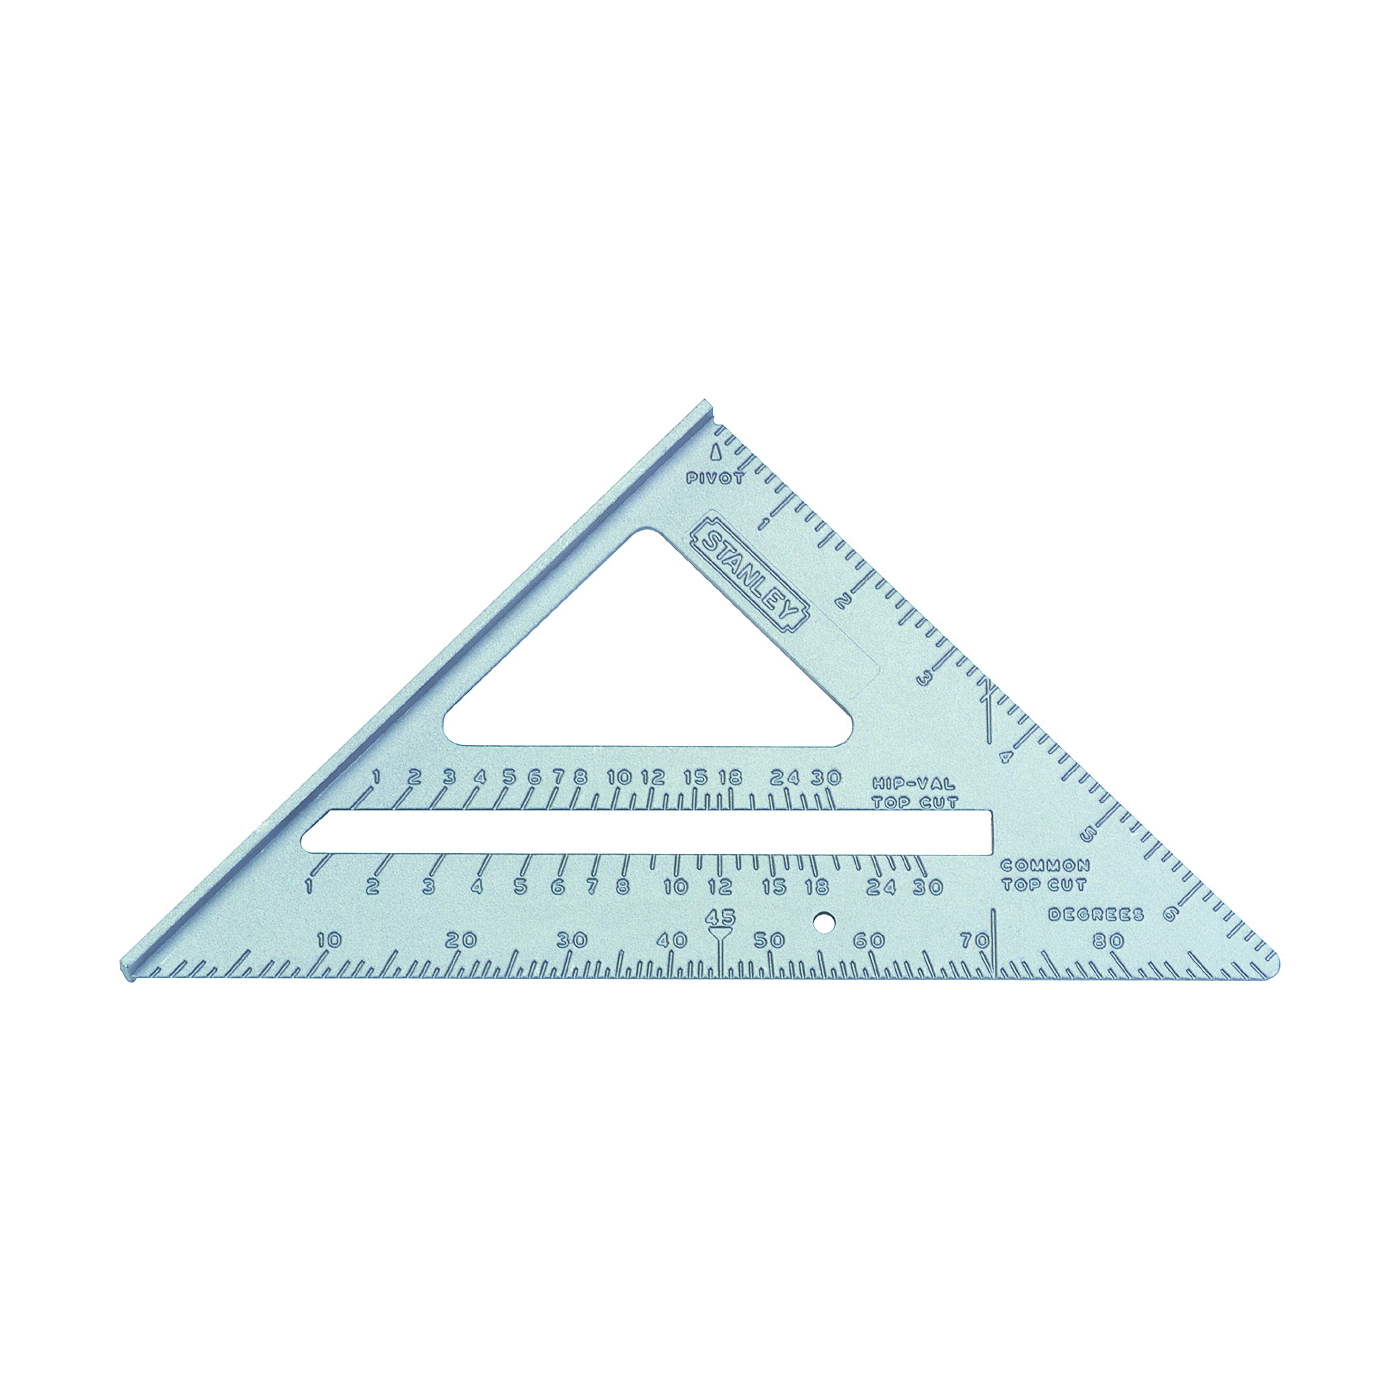 Picture of STANLEY Quick Square 46-067 Layout Tool, SAE Graduation, Aluminum, 6-3/4 in L